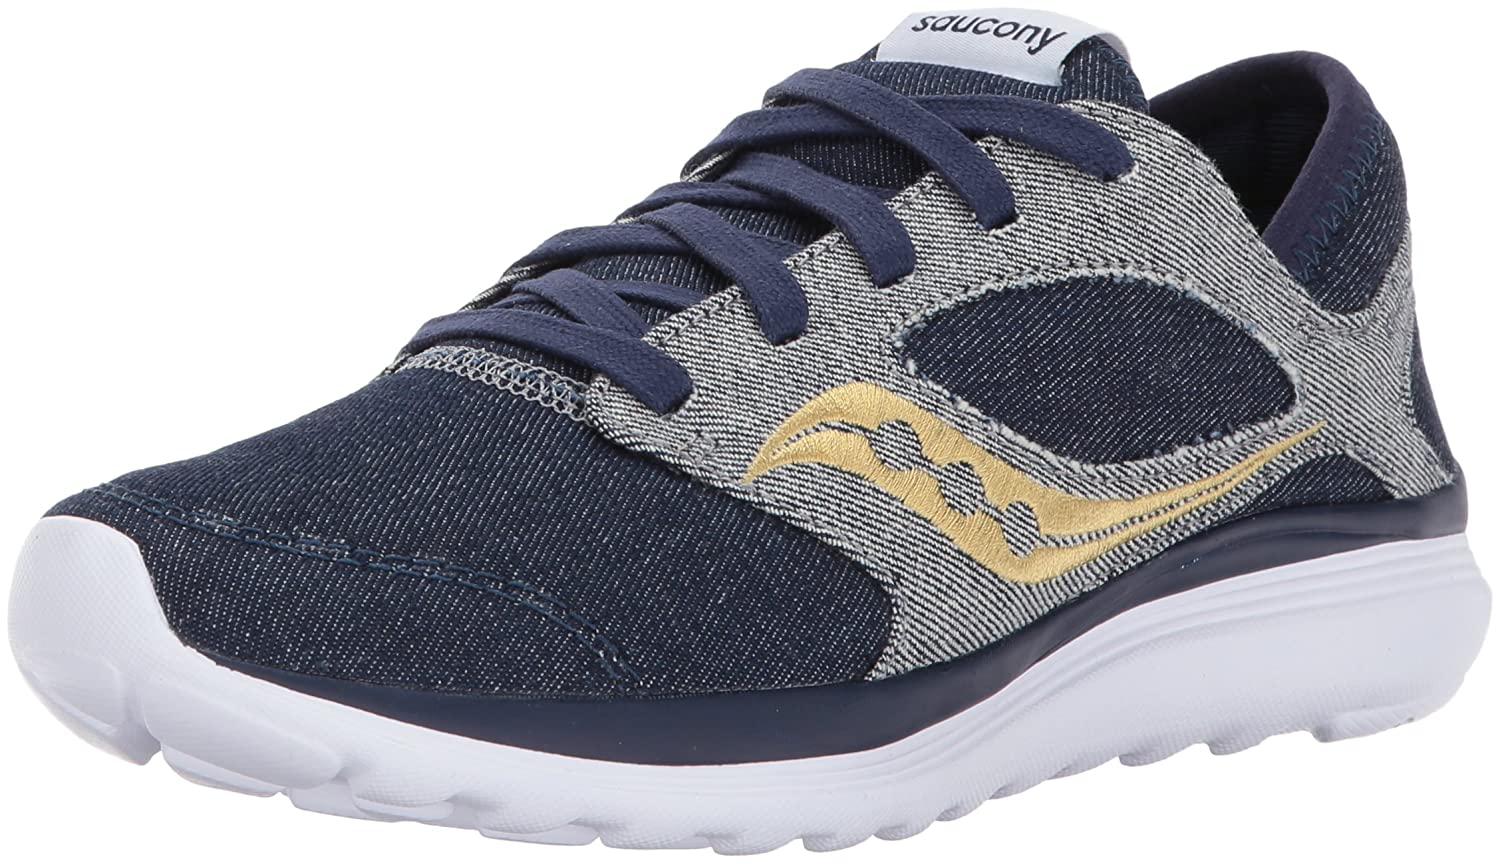 Saucony Women's Kineta Relay Denim Sneaker B01NCORUJ1 12 B(M) US|Blue